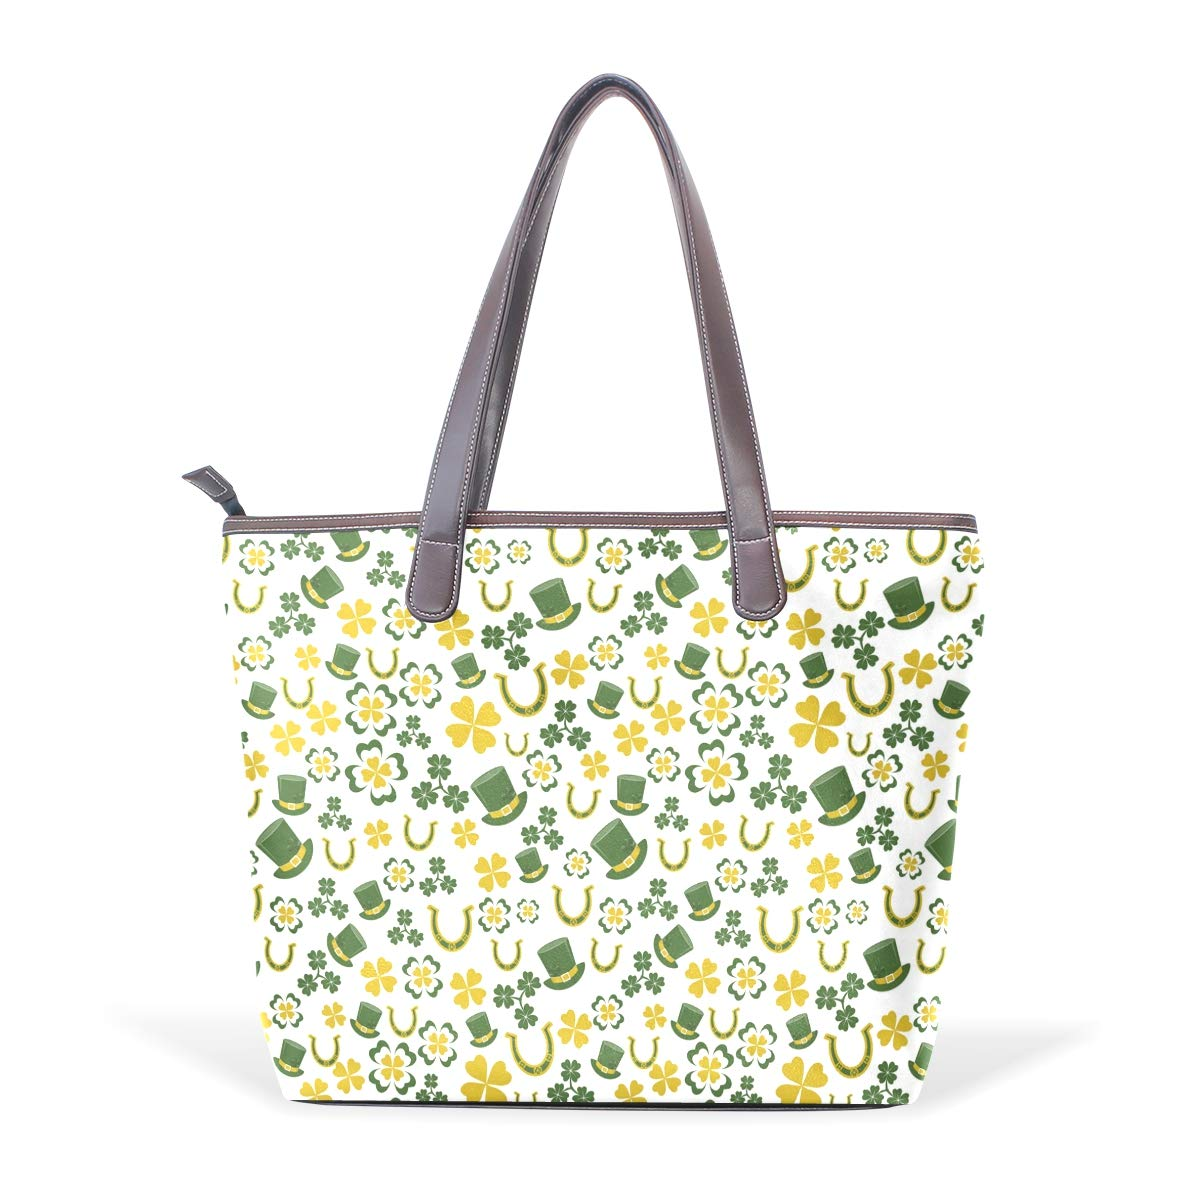 Womens Leather A Fine St Patricks Day Yellow Clover Handbag Satchel Tote Bag Tote Purse